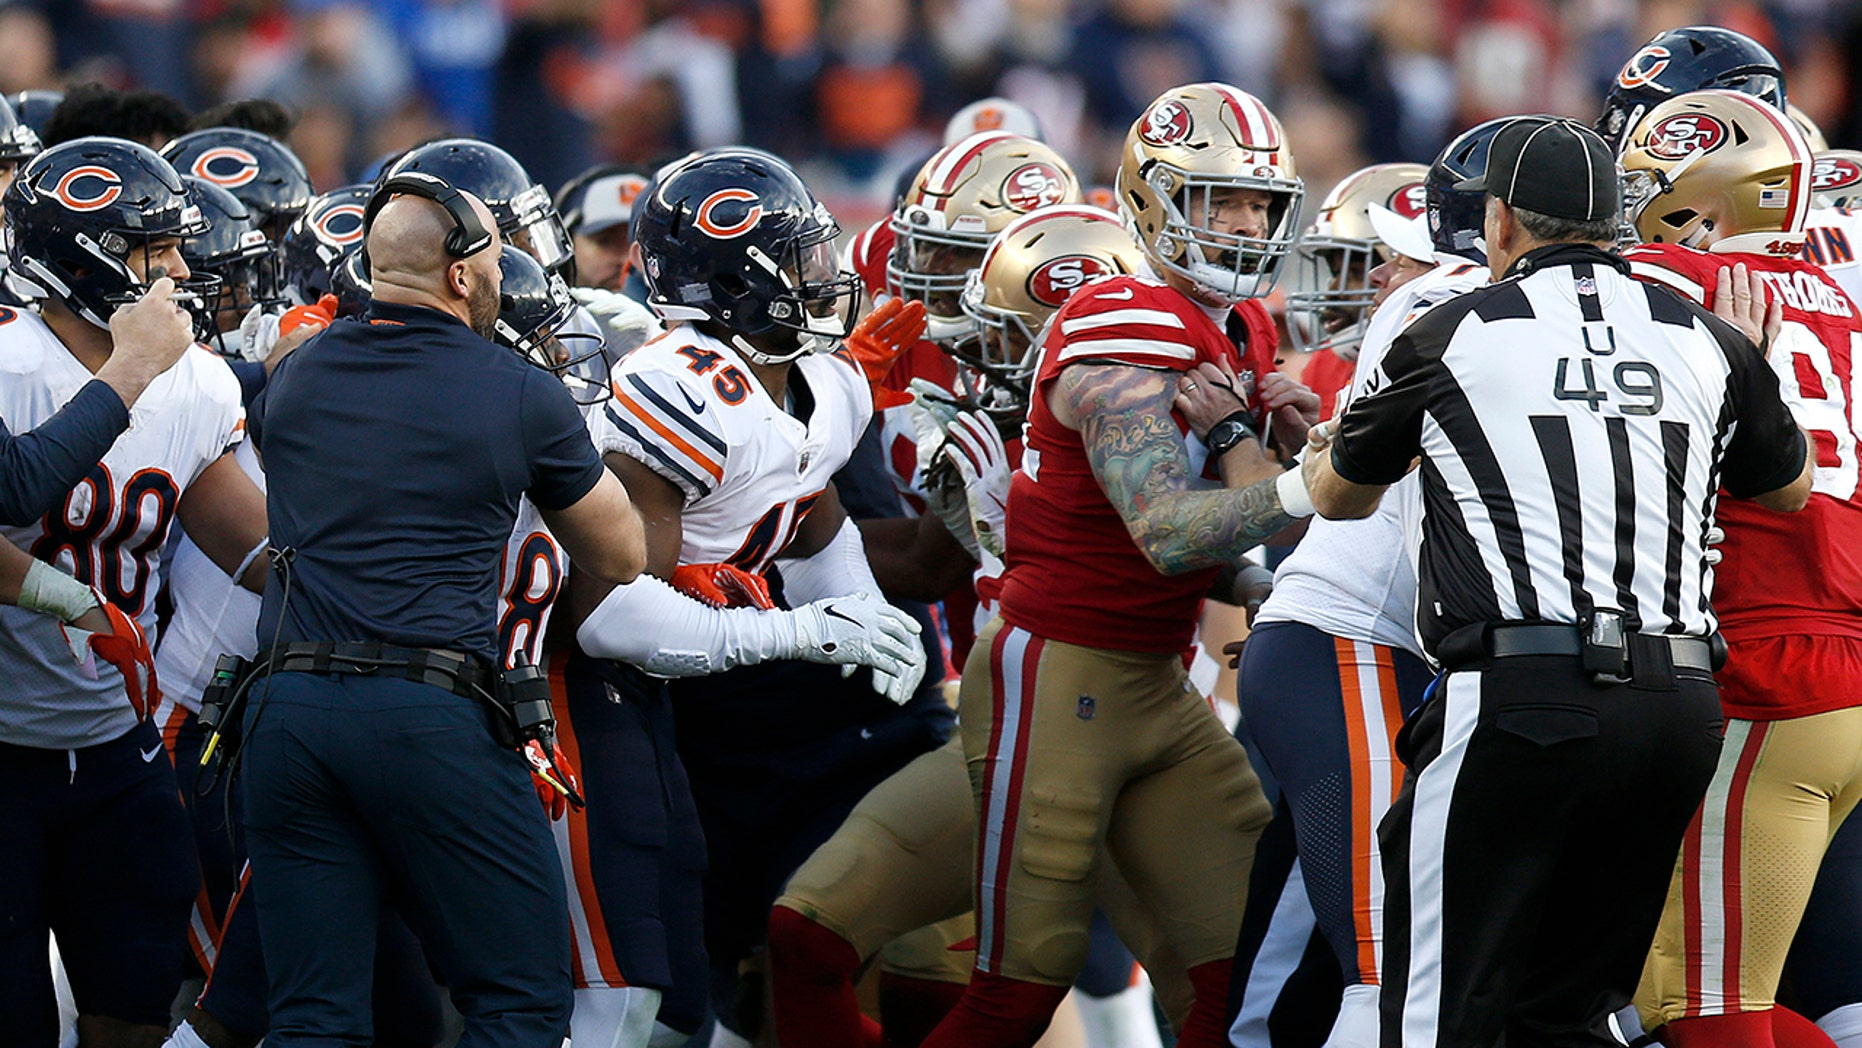 Richard Sherman Was Ejected After A Brawl Between The 49ers And Bears